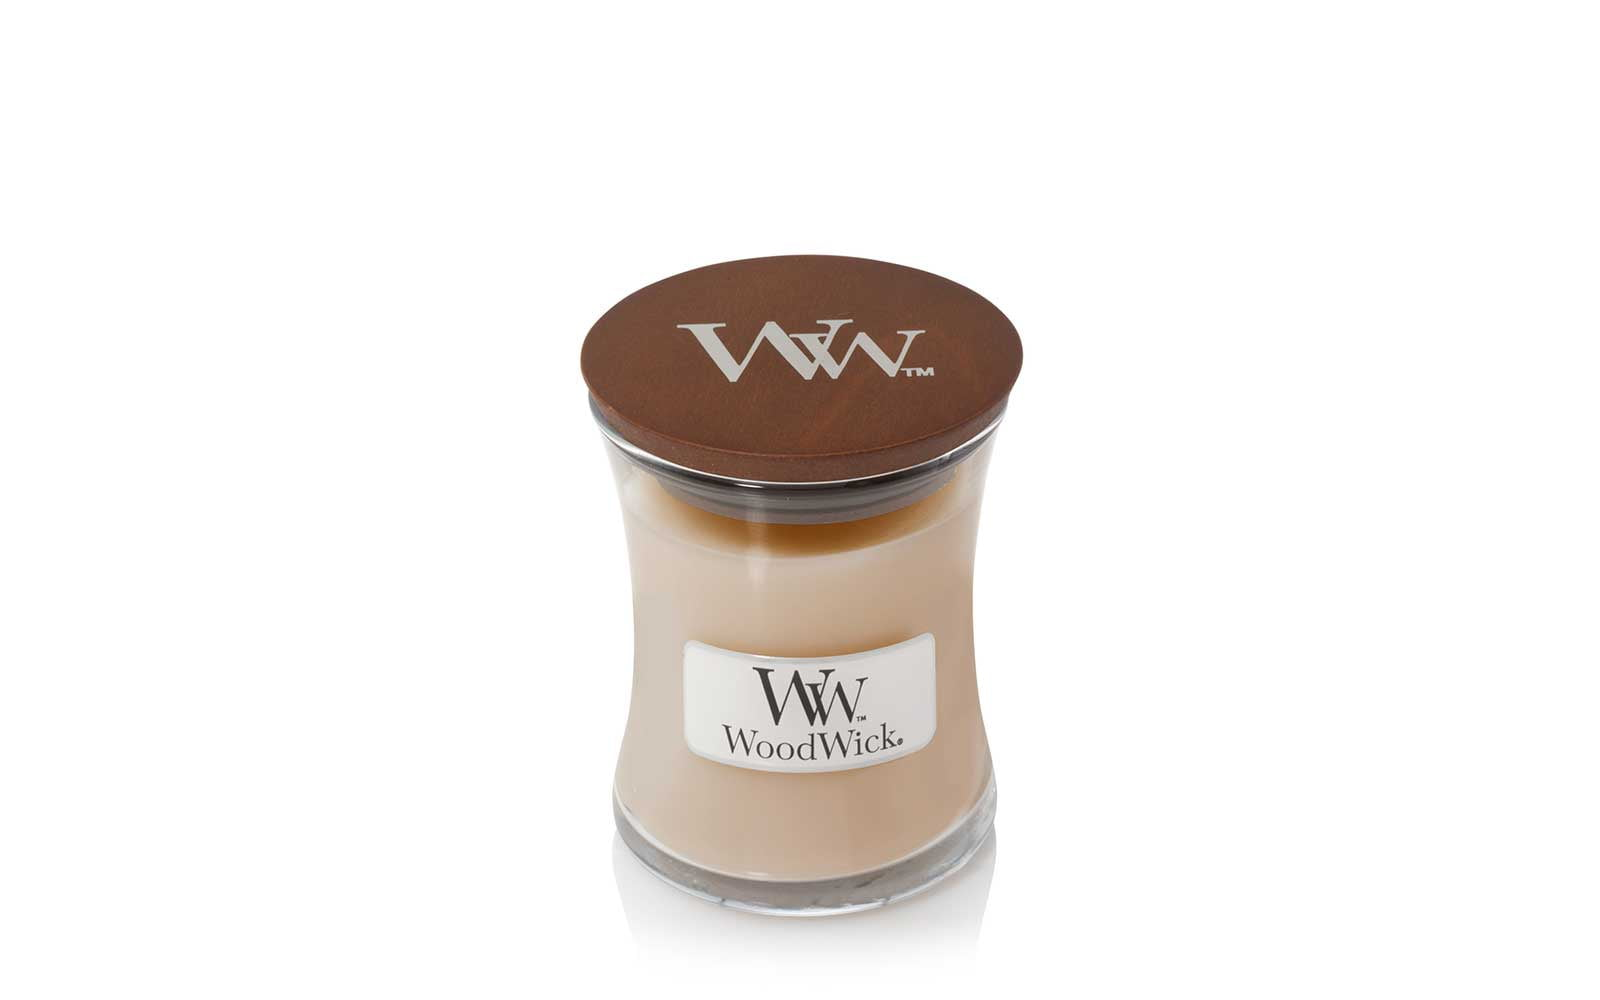 Woodwick Mini Candle in White Honey